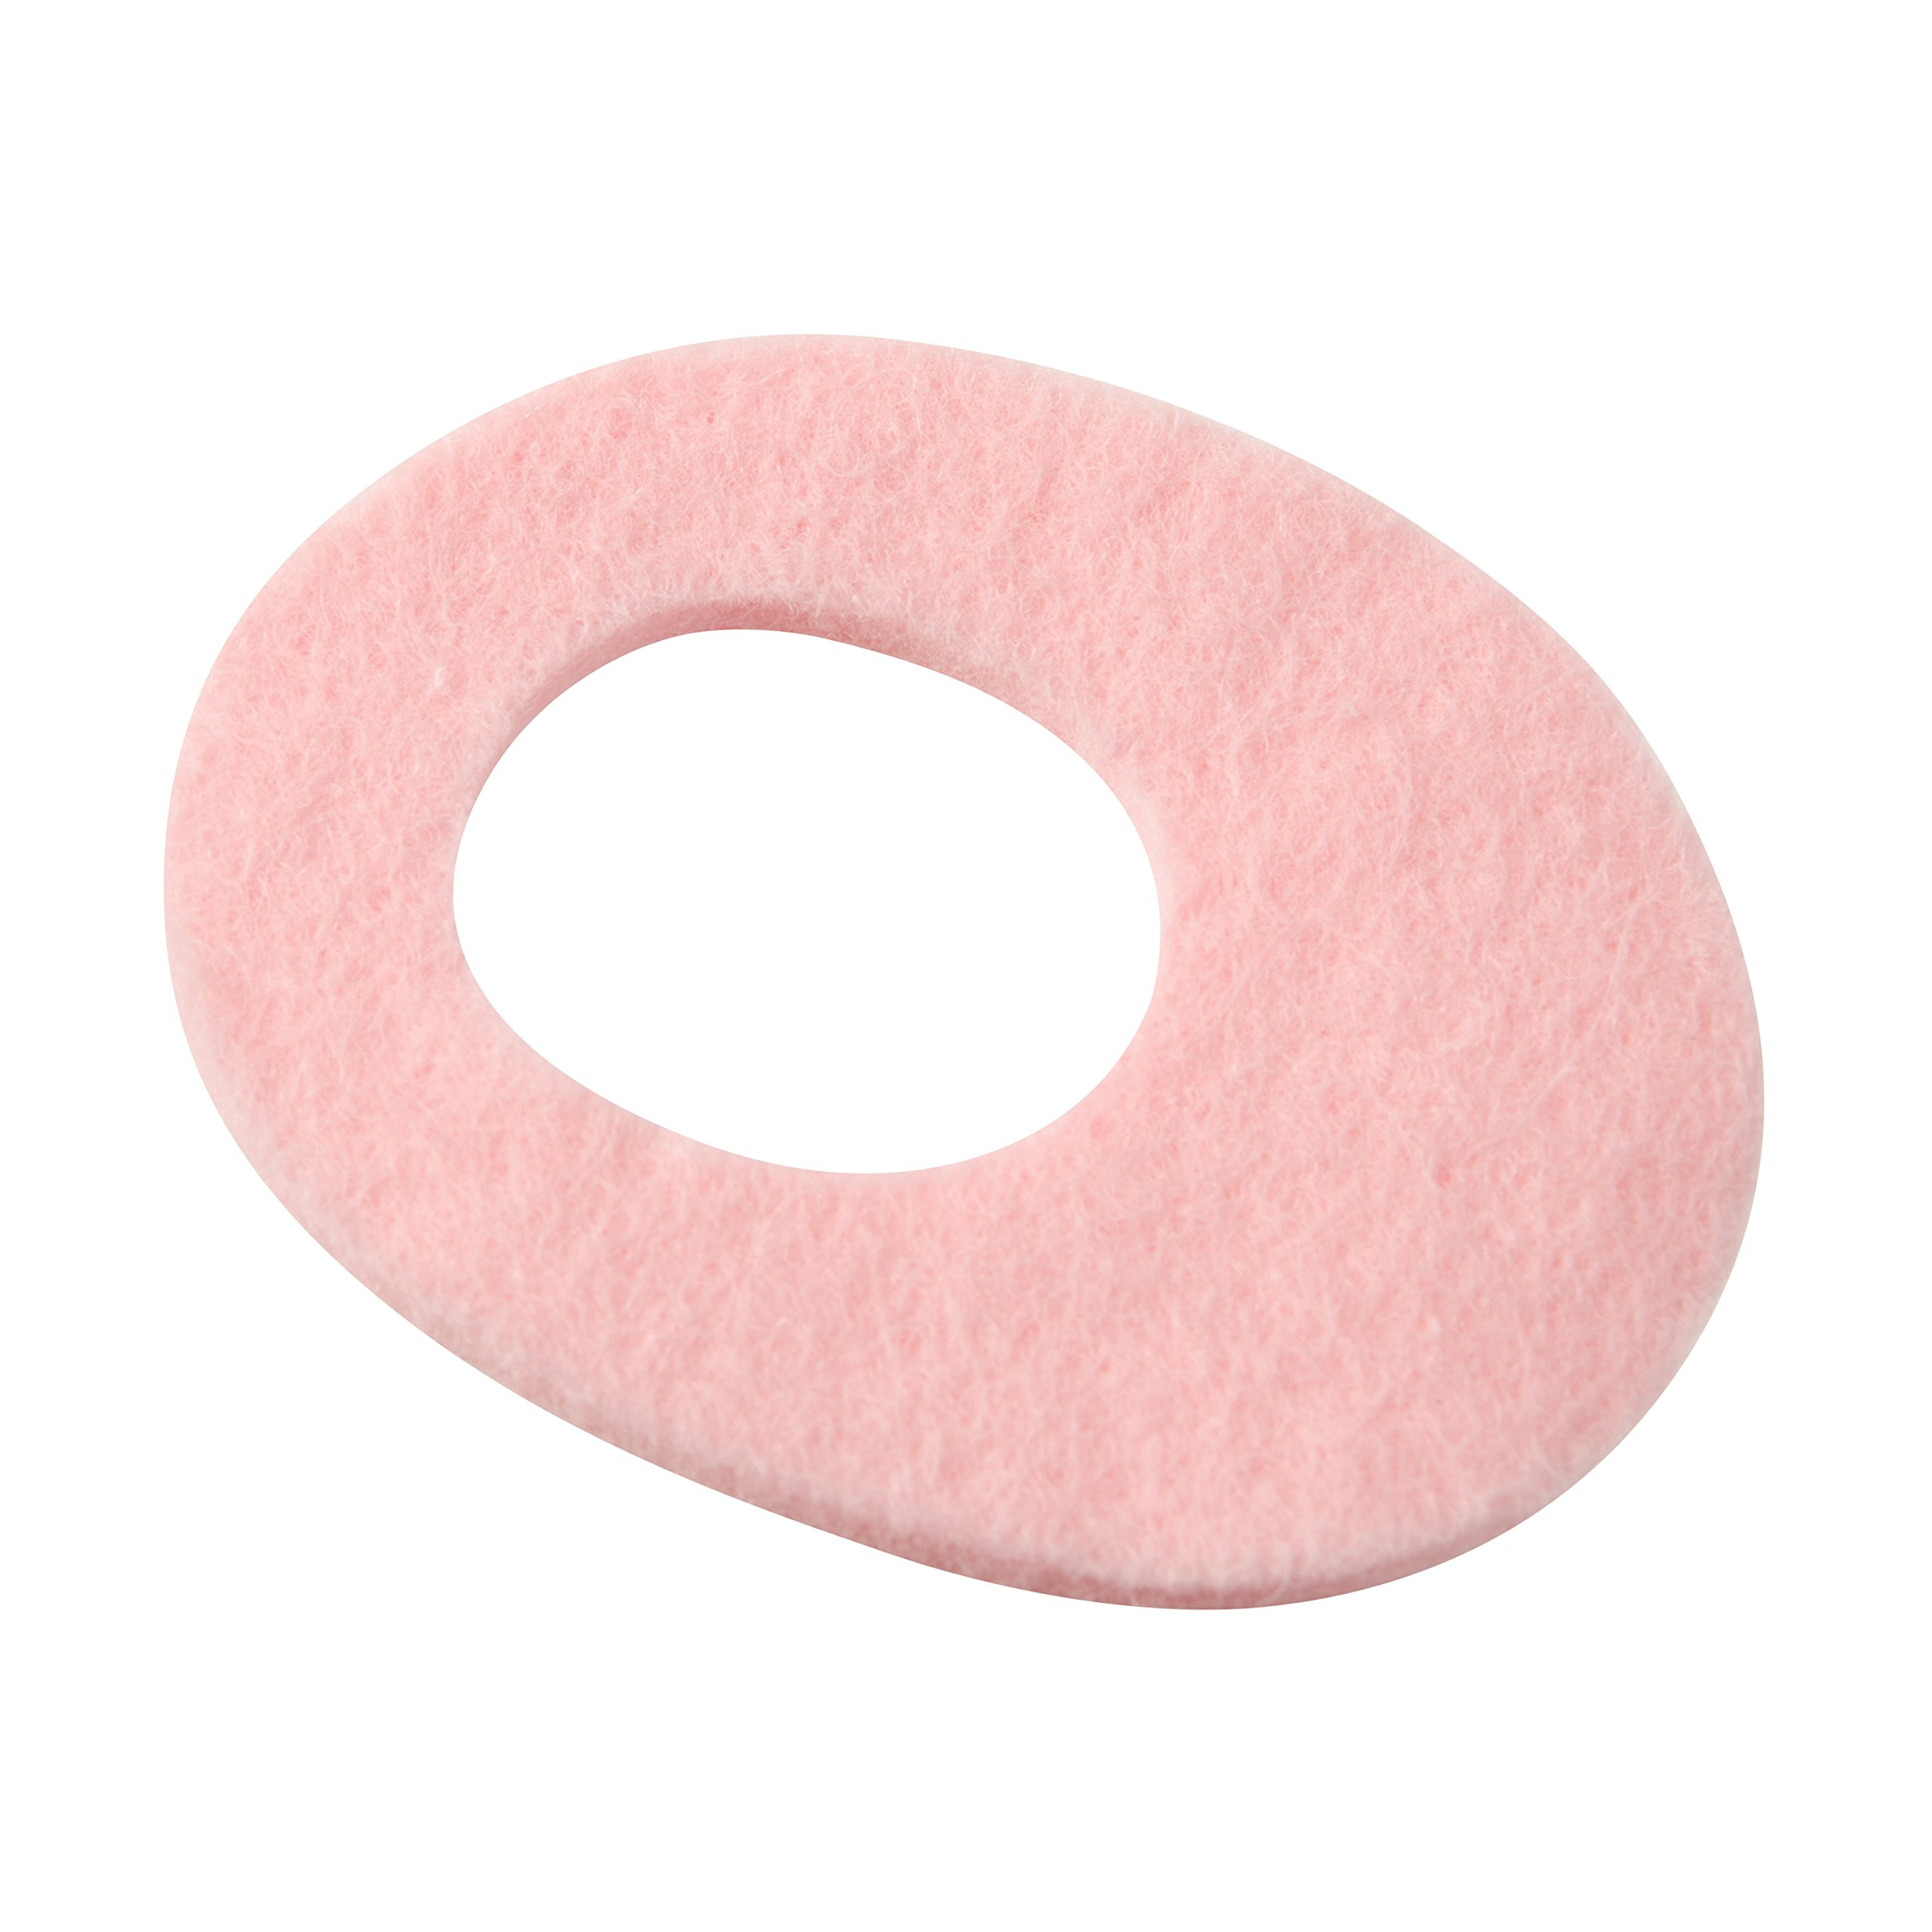 Steins 1/8 Inch Adhesive Felt Bunion BP-12 Pads, 9 Count